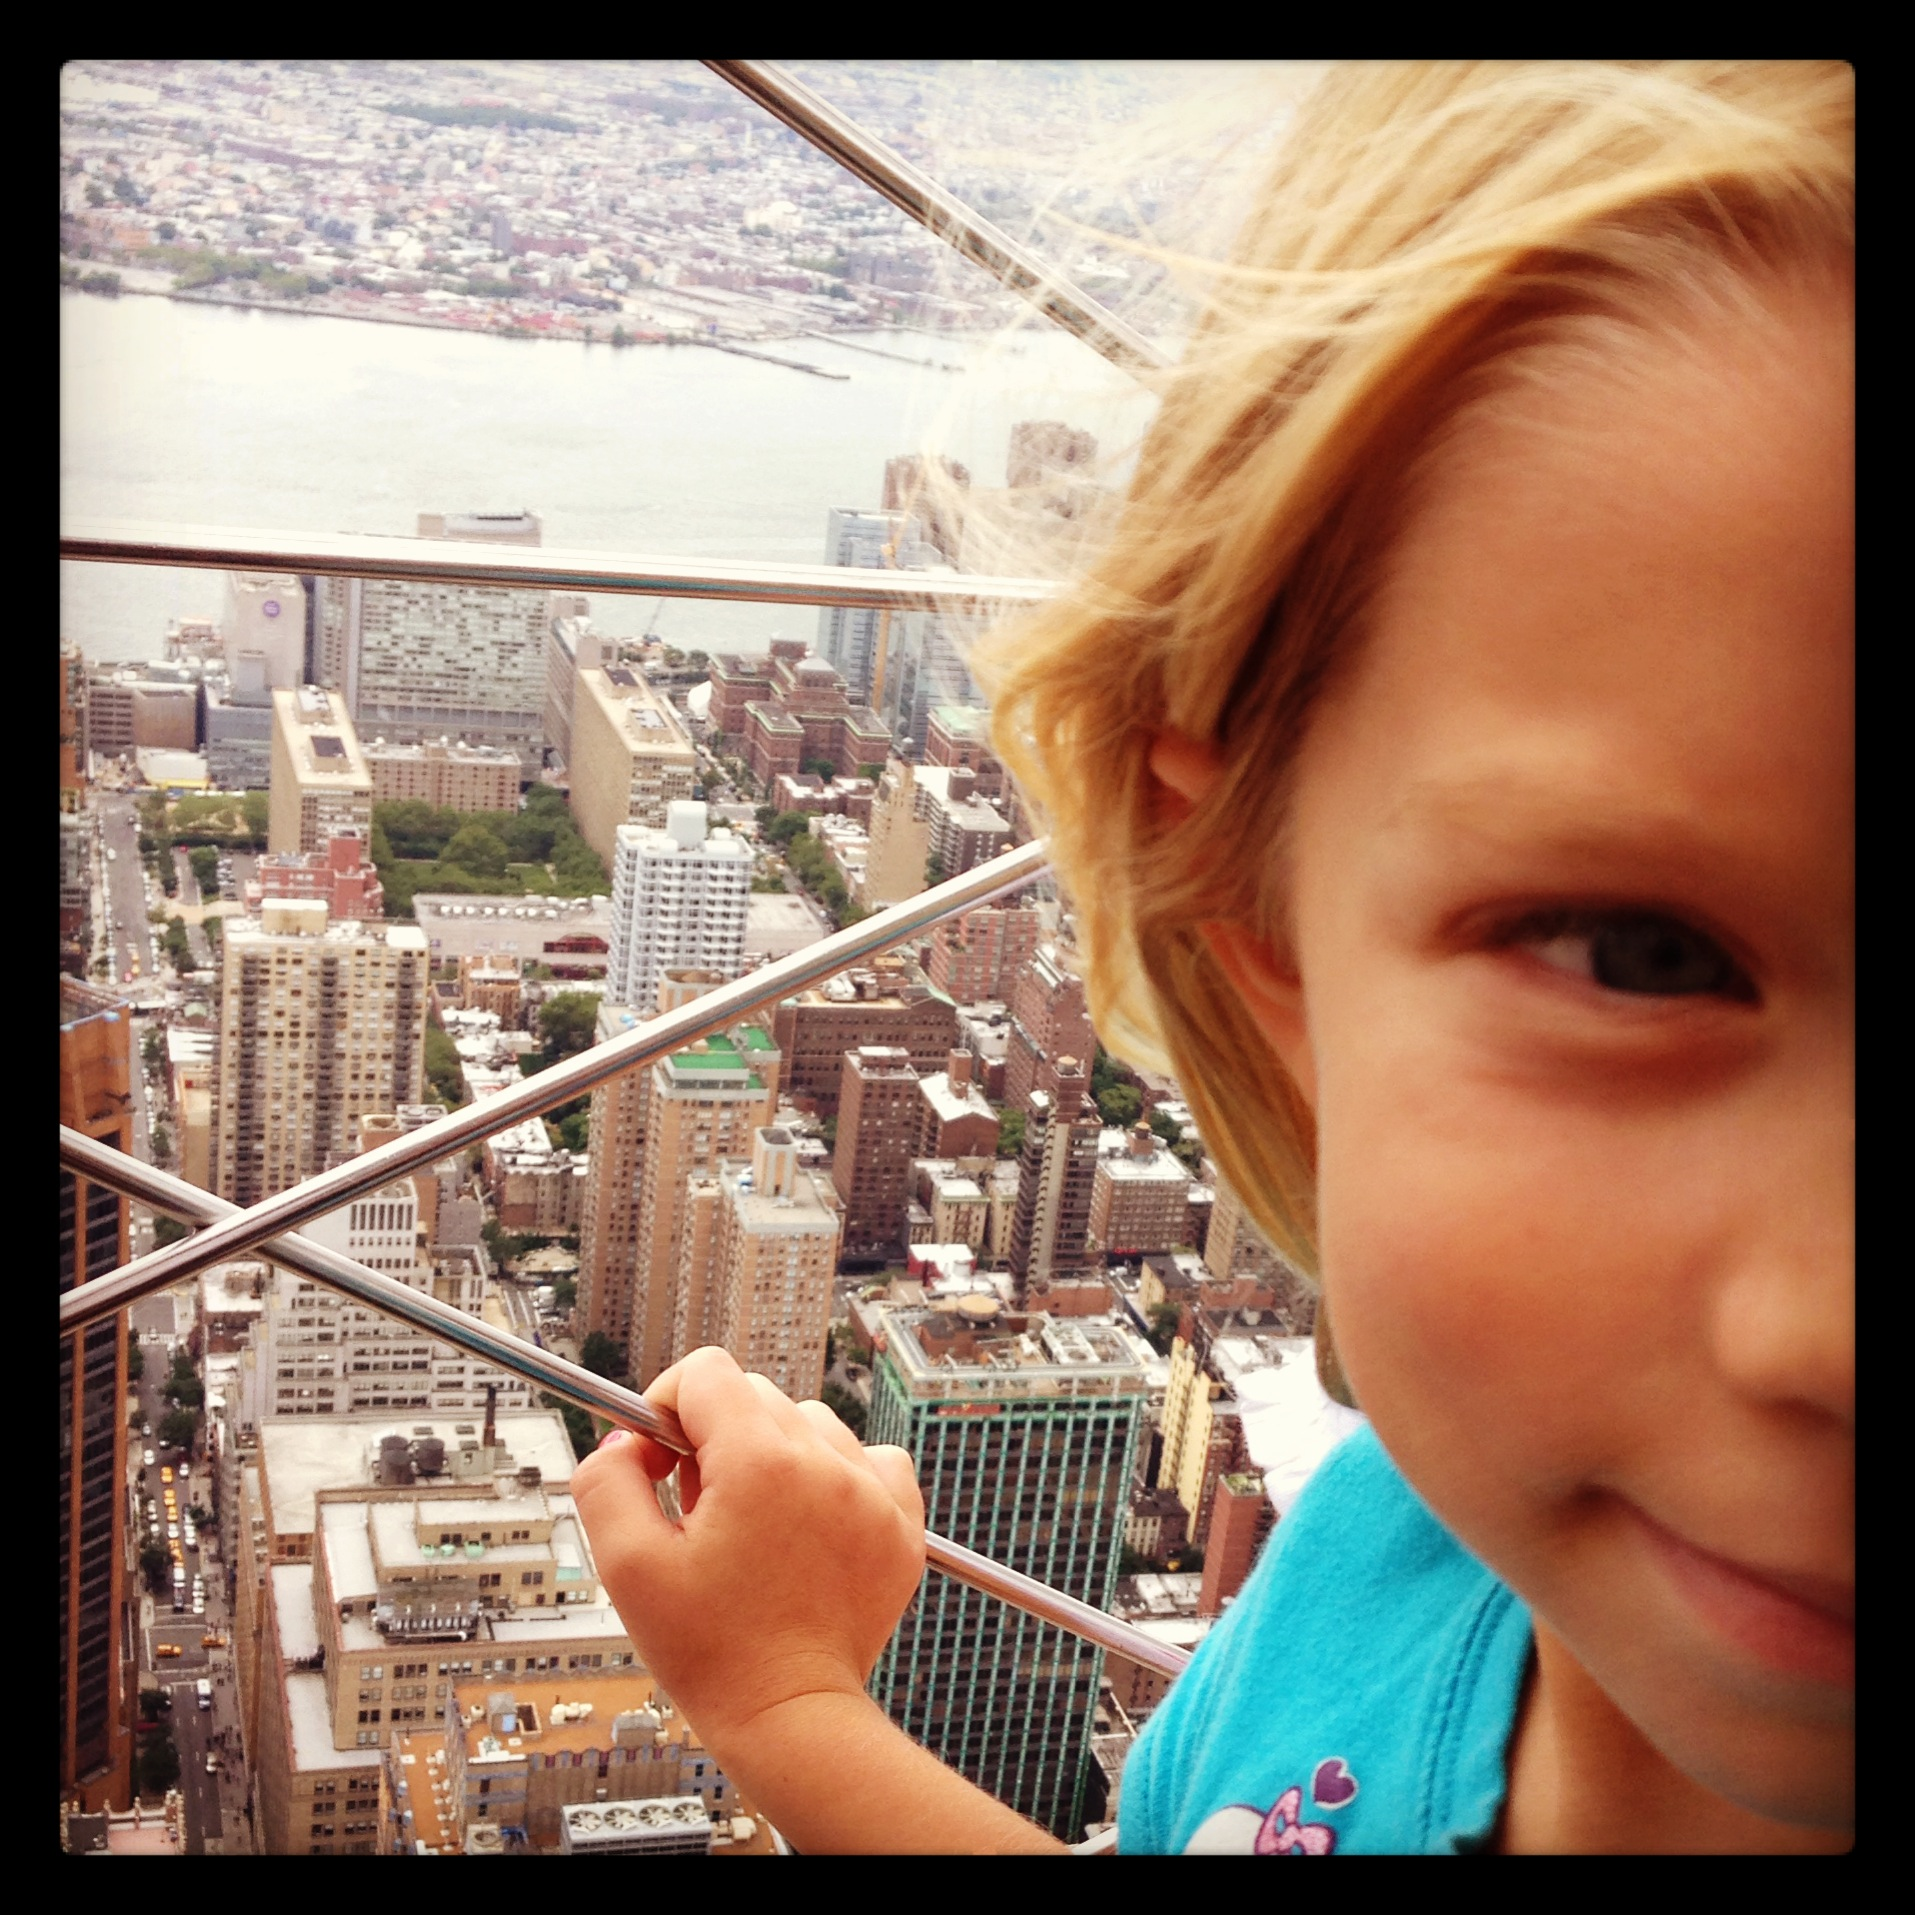 empire state building, New York City, sight seeing in NYC, travel, family vacation, traveling with kids in New York